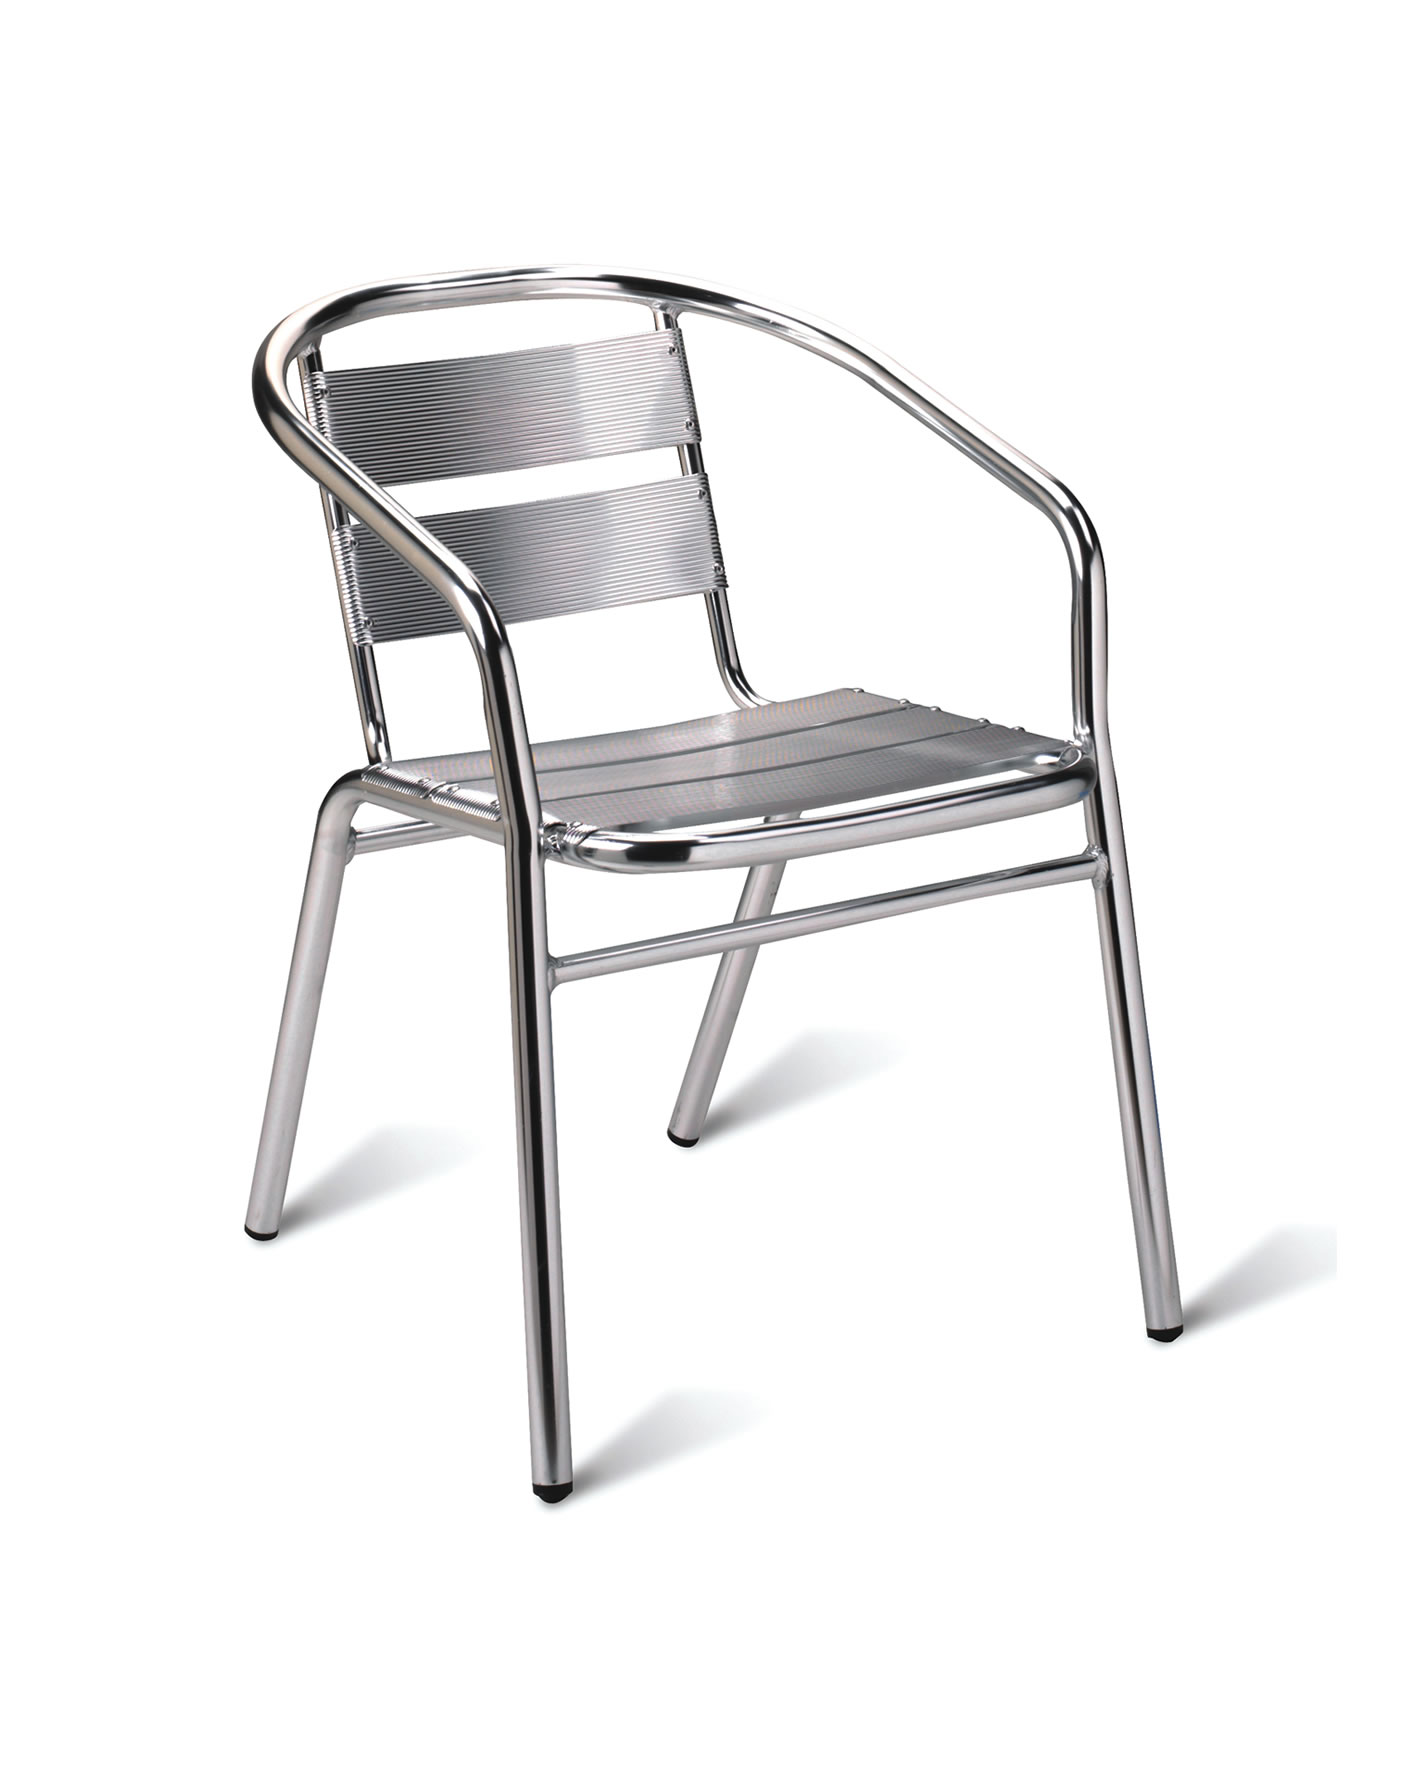 1893 ALUMINIUM ARM CHAIR